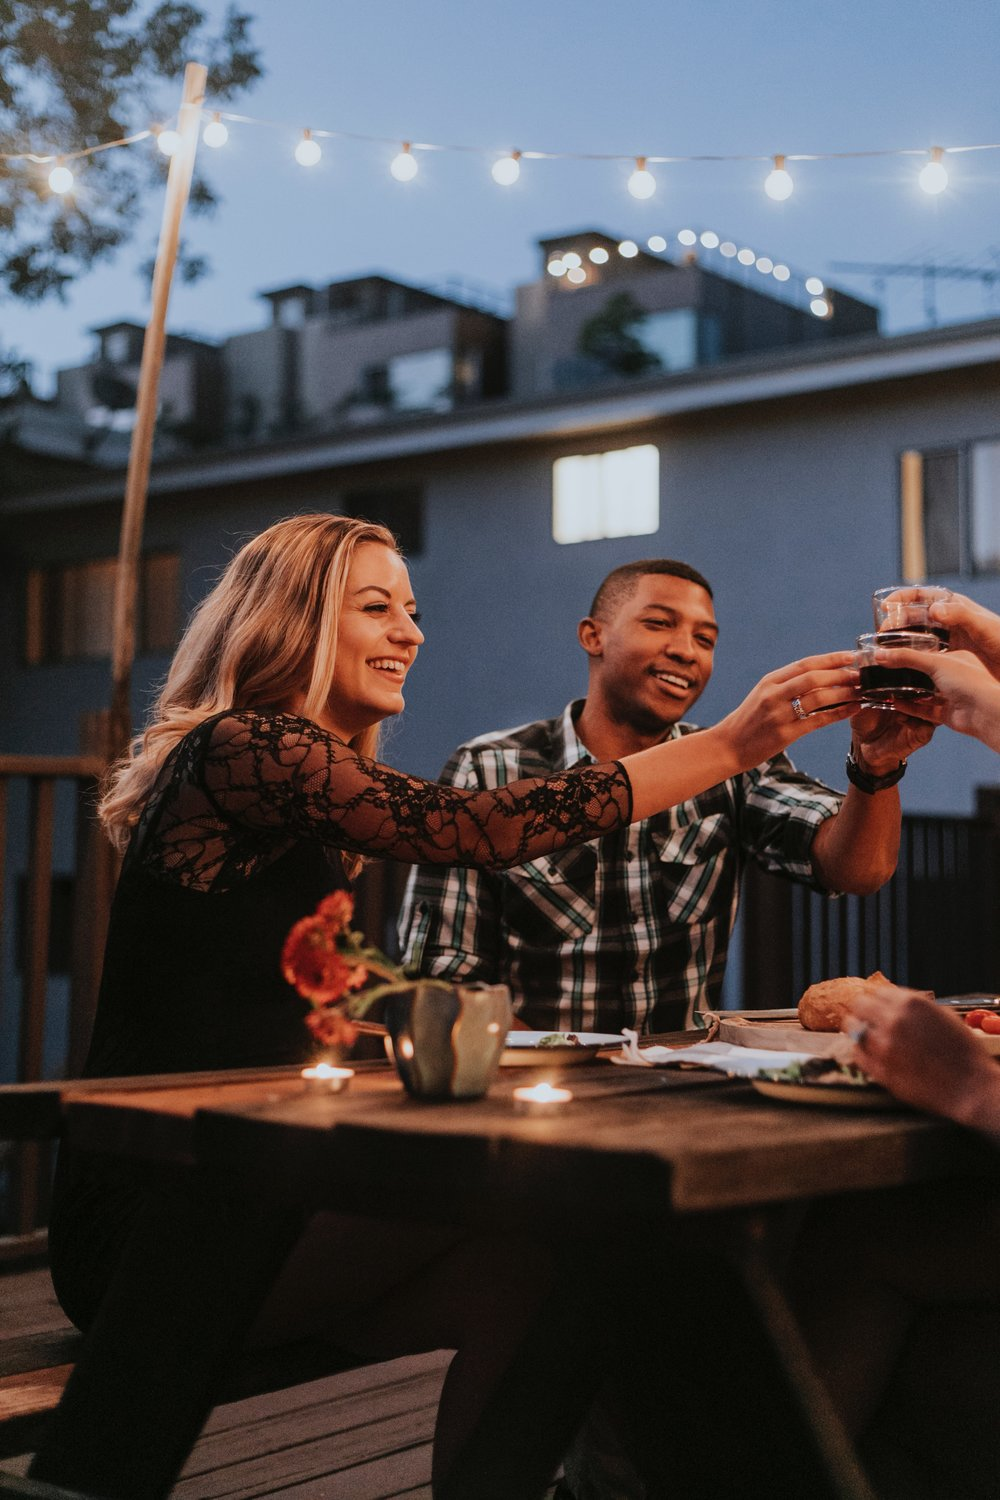 adult-friends-cheers-at-rooftop-restaurant.jpg